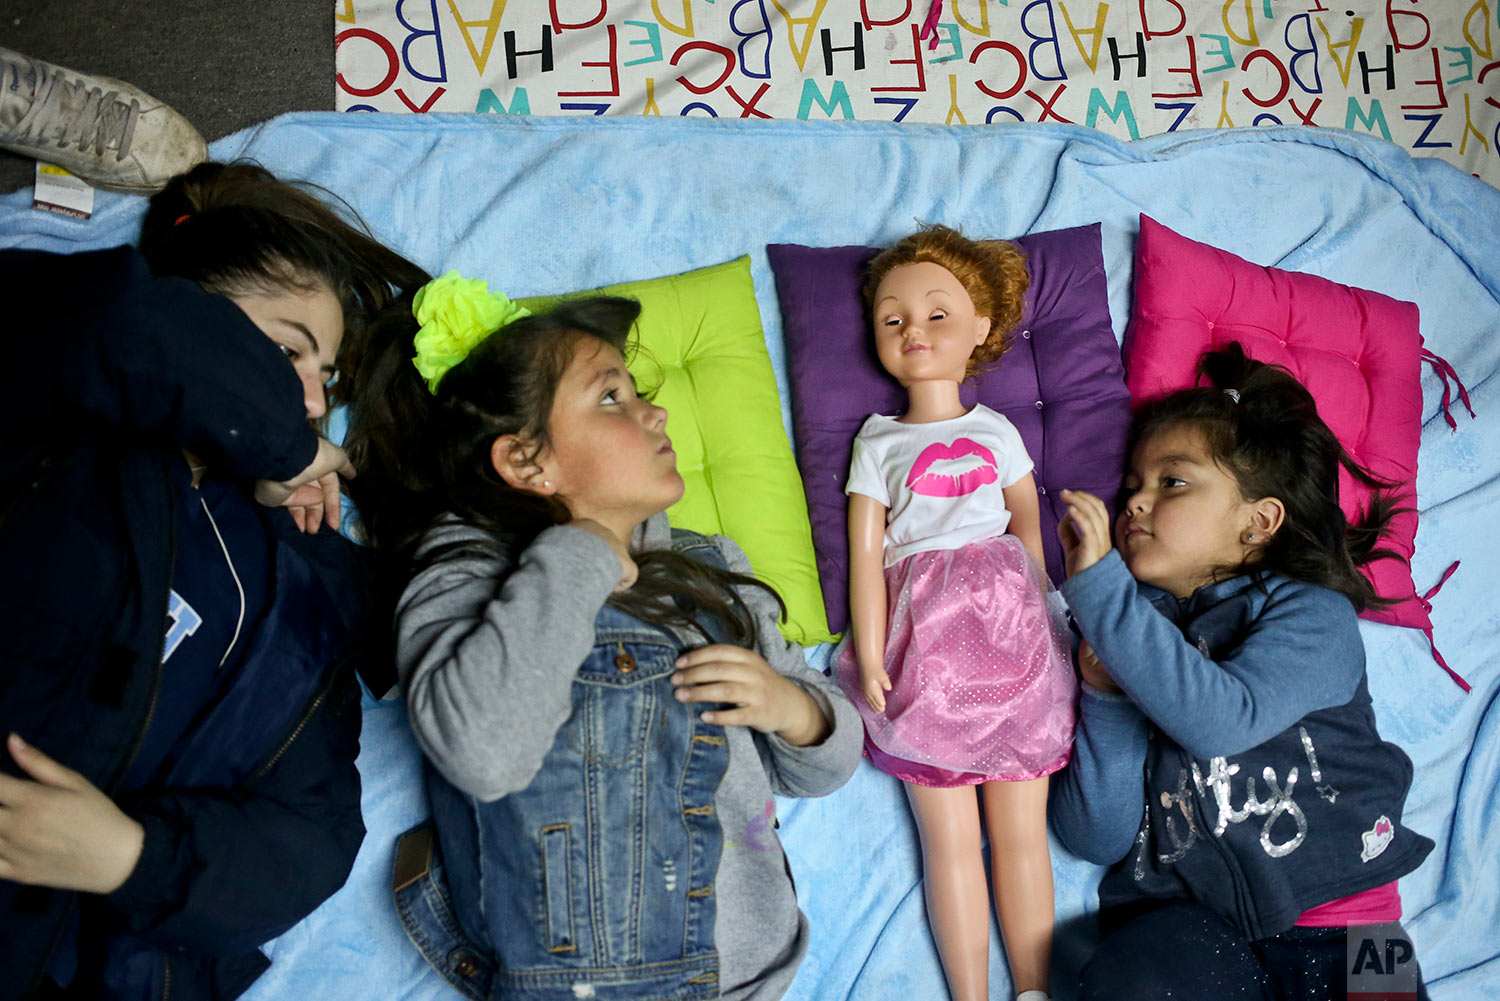 """In this July 8, 2017 photo, transgender girls Selenna, second from left, and Mathilda, right, play with a doll as their mothers attend a meeting on gender identity at a bookshop in Santiago, Chile. Selenna said she never liked celebrating her birthday because she would always get toy cars. """"Maybe they didn't notice it,"""" said Selenna. """"But I was always (a girl)."""" (AP Photo/Esteban Felix)"""